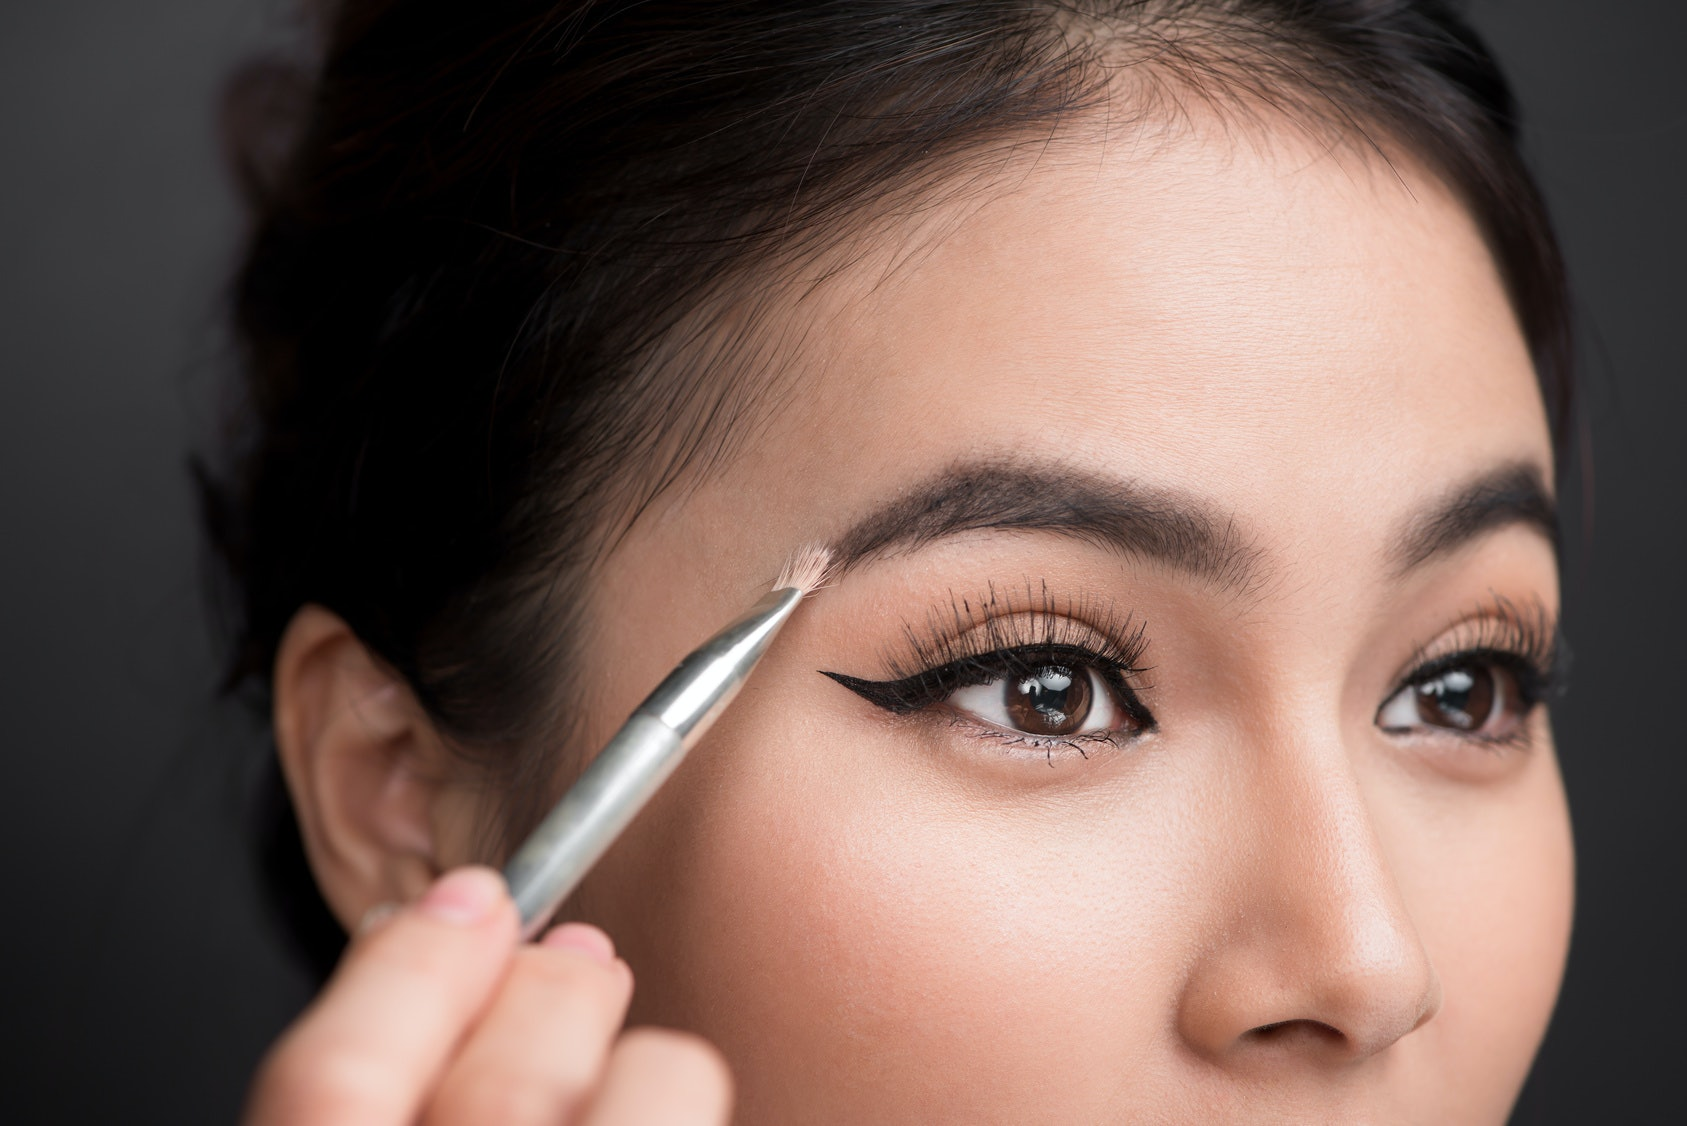 How to Use Brow Potion to Grow Eyebrows advise